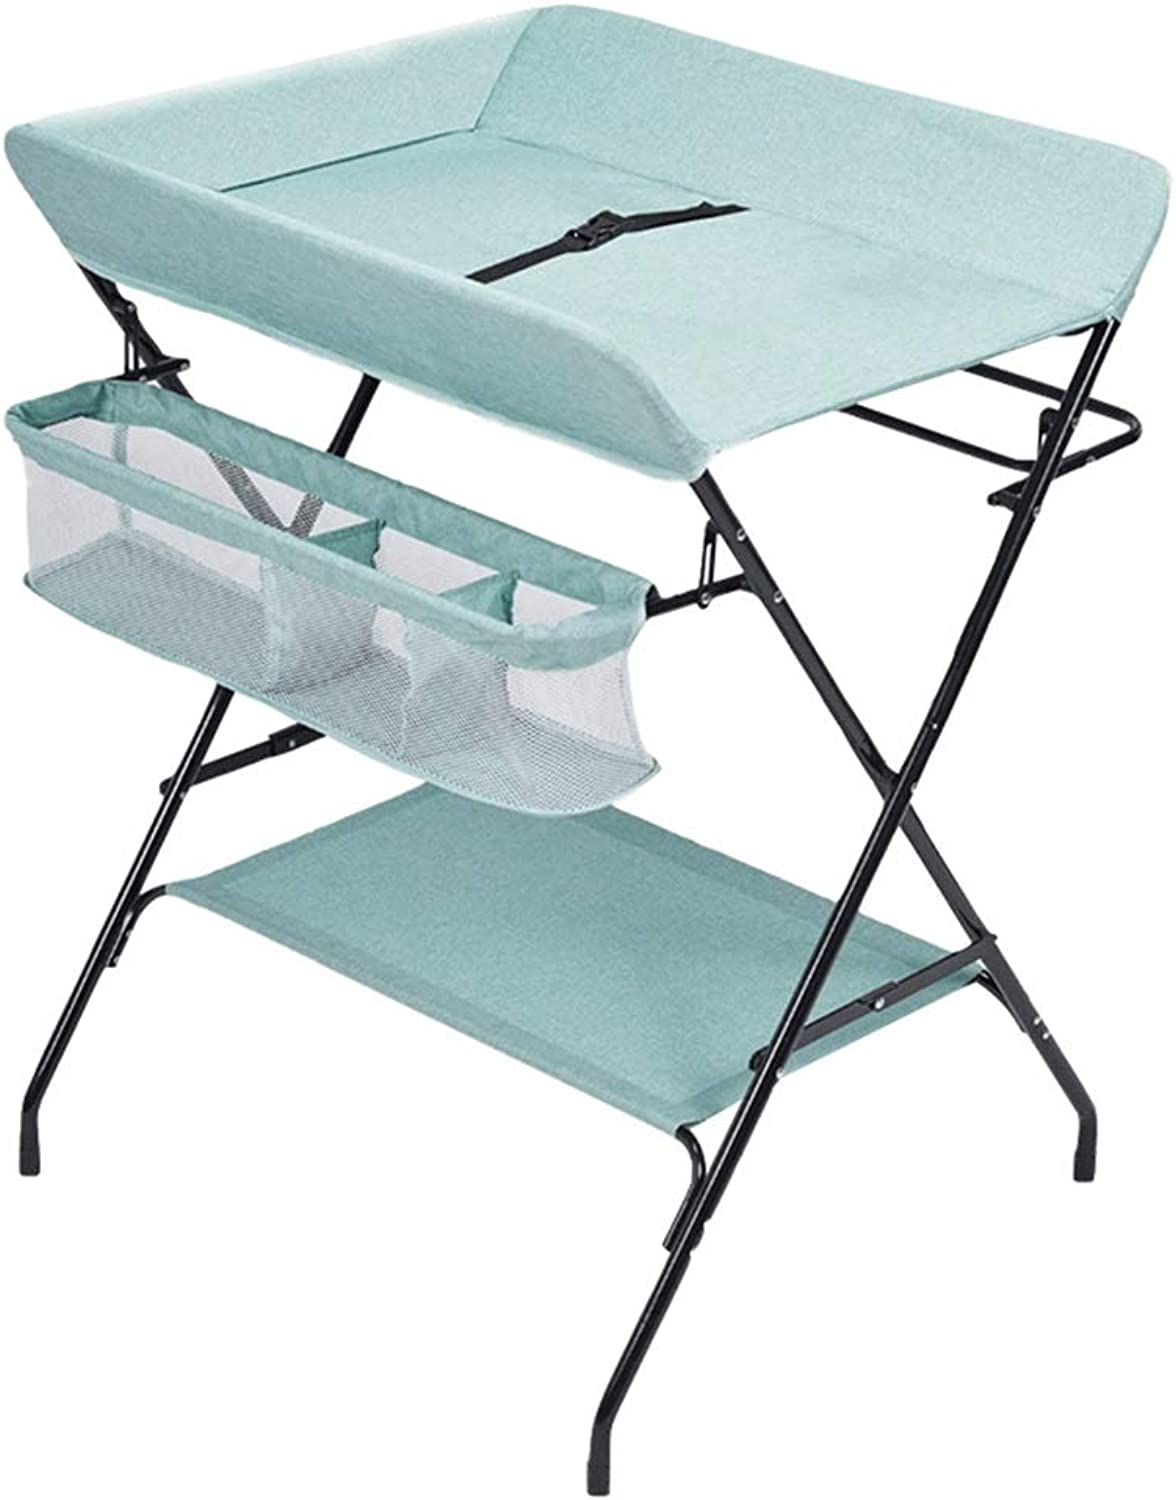 HANSHAN Changing Table Changing Table, Multifunction Baby Care Table Newborn Massage Storage Can Foldable 2 color 0-2 Years Old 31 × 26 × 37 Inch (color   Fresh Green)